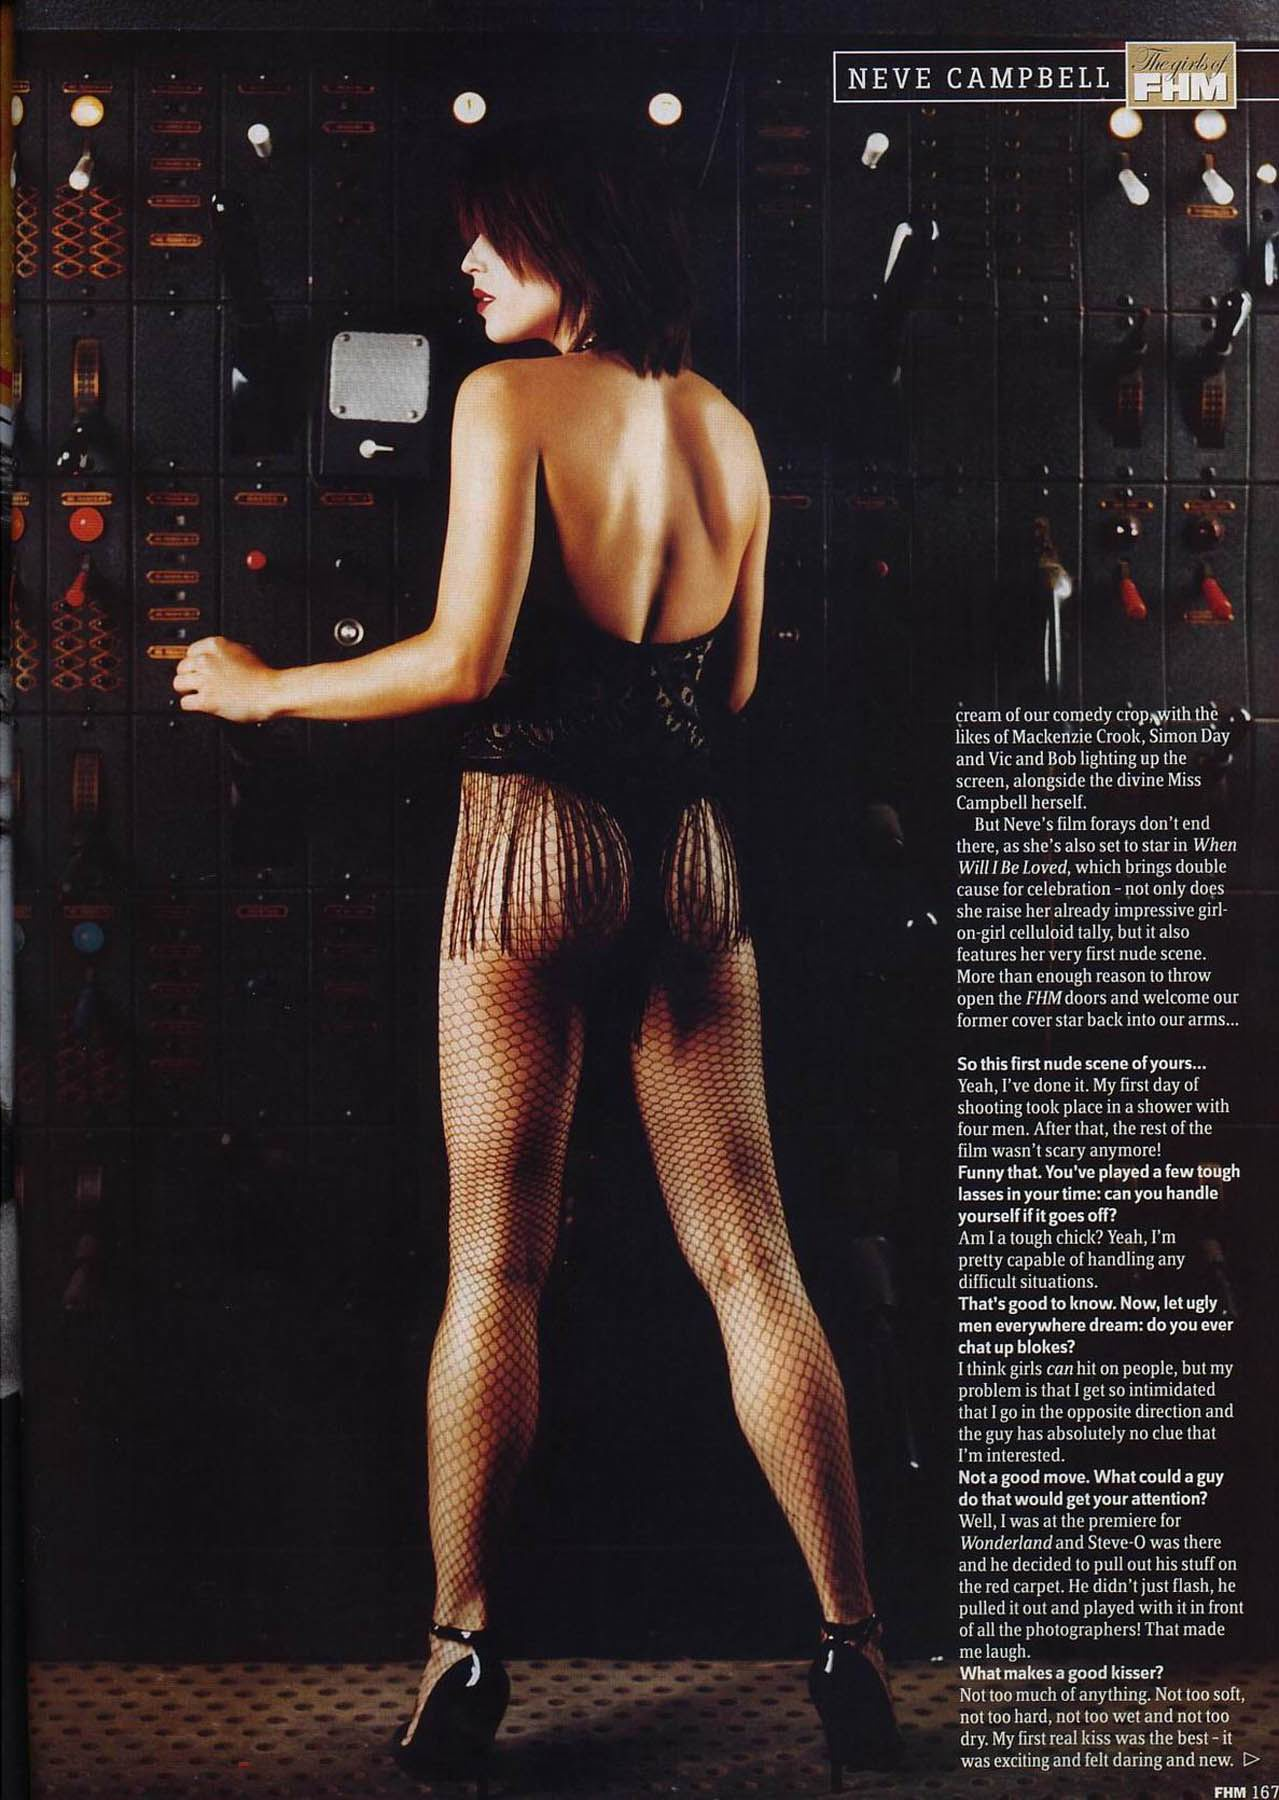 Neve Campbell Nude - Page 7 Pictures, Naked, Oops, Topless, Bikini, Video, Nipple-1708